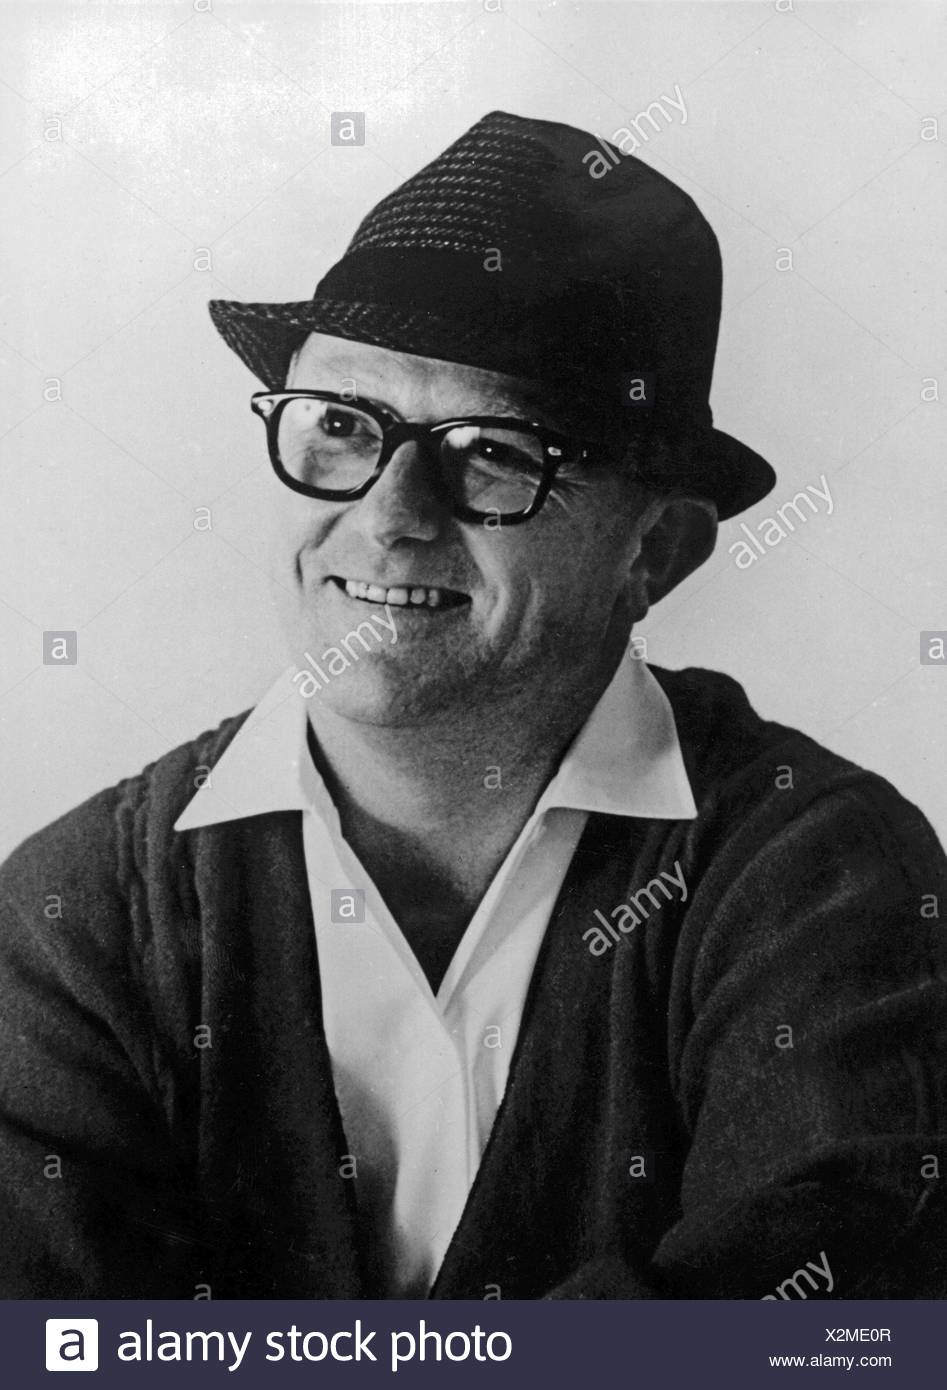 Vaughn, Billy, 12.4.1919 - 26.9.1991, American musician and singer, portrait, 1950s, Additional-Rights-Clearances-NA - Stock Image